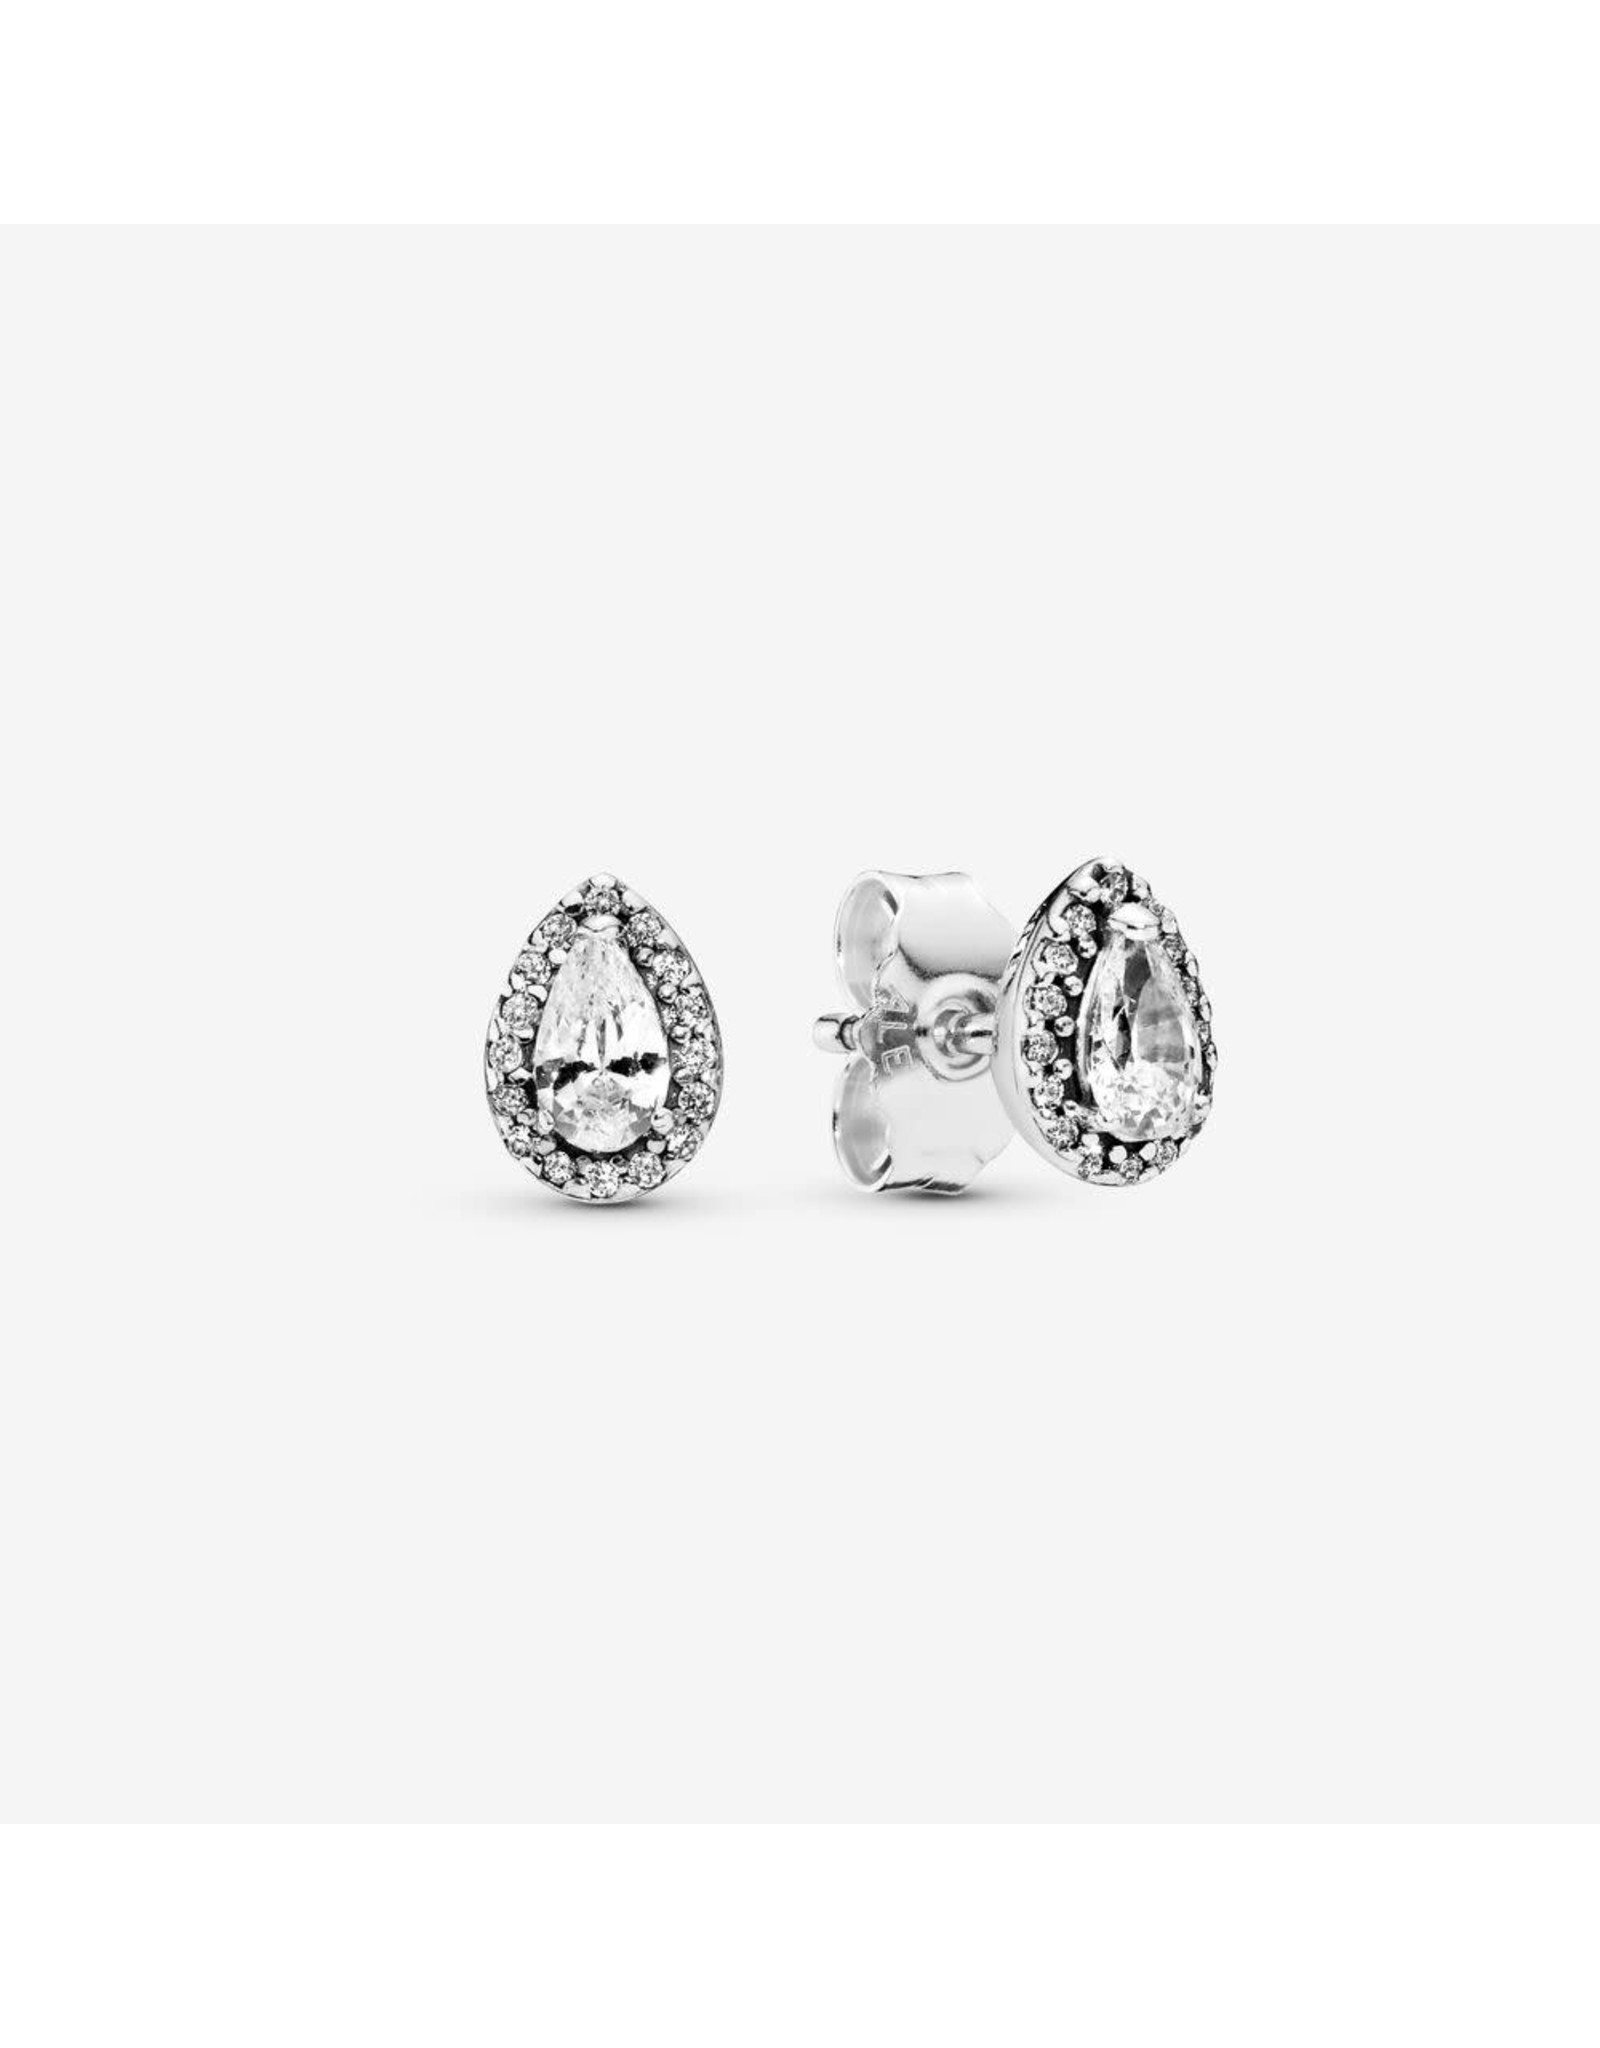 Pandora Pandora Stud Earrings (296252CZ) In Sterling Silver With Clear CZ